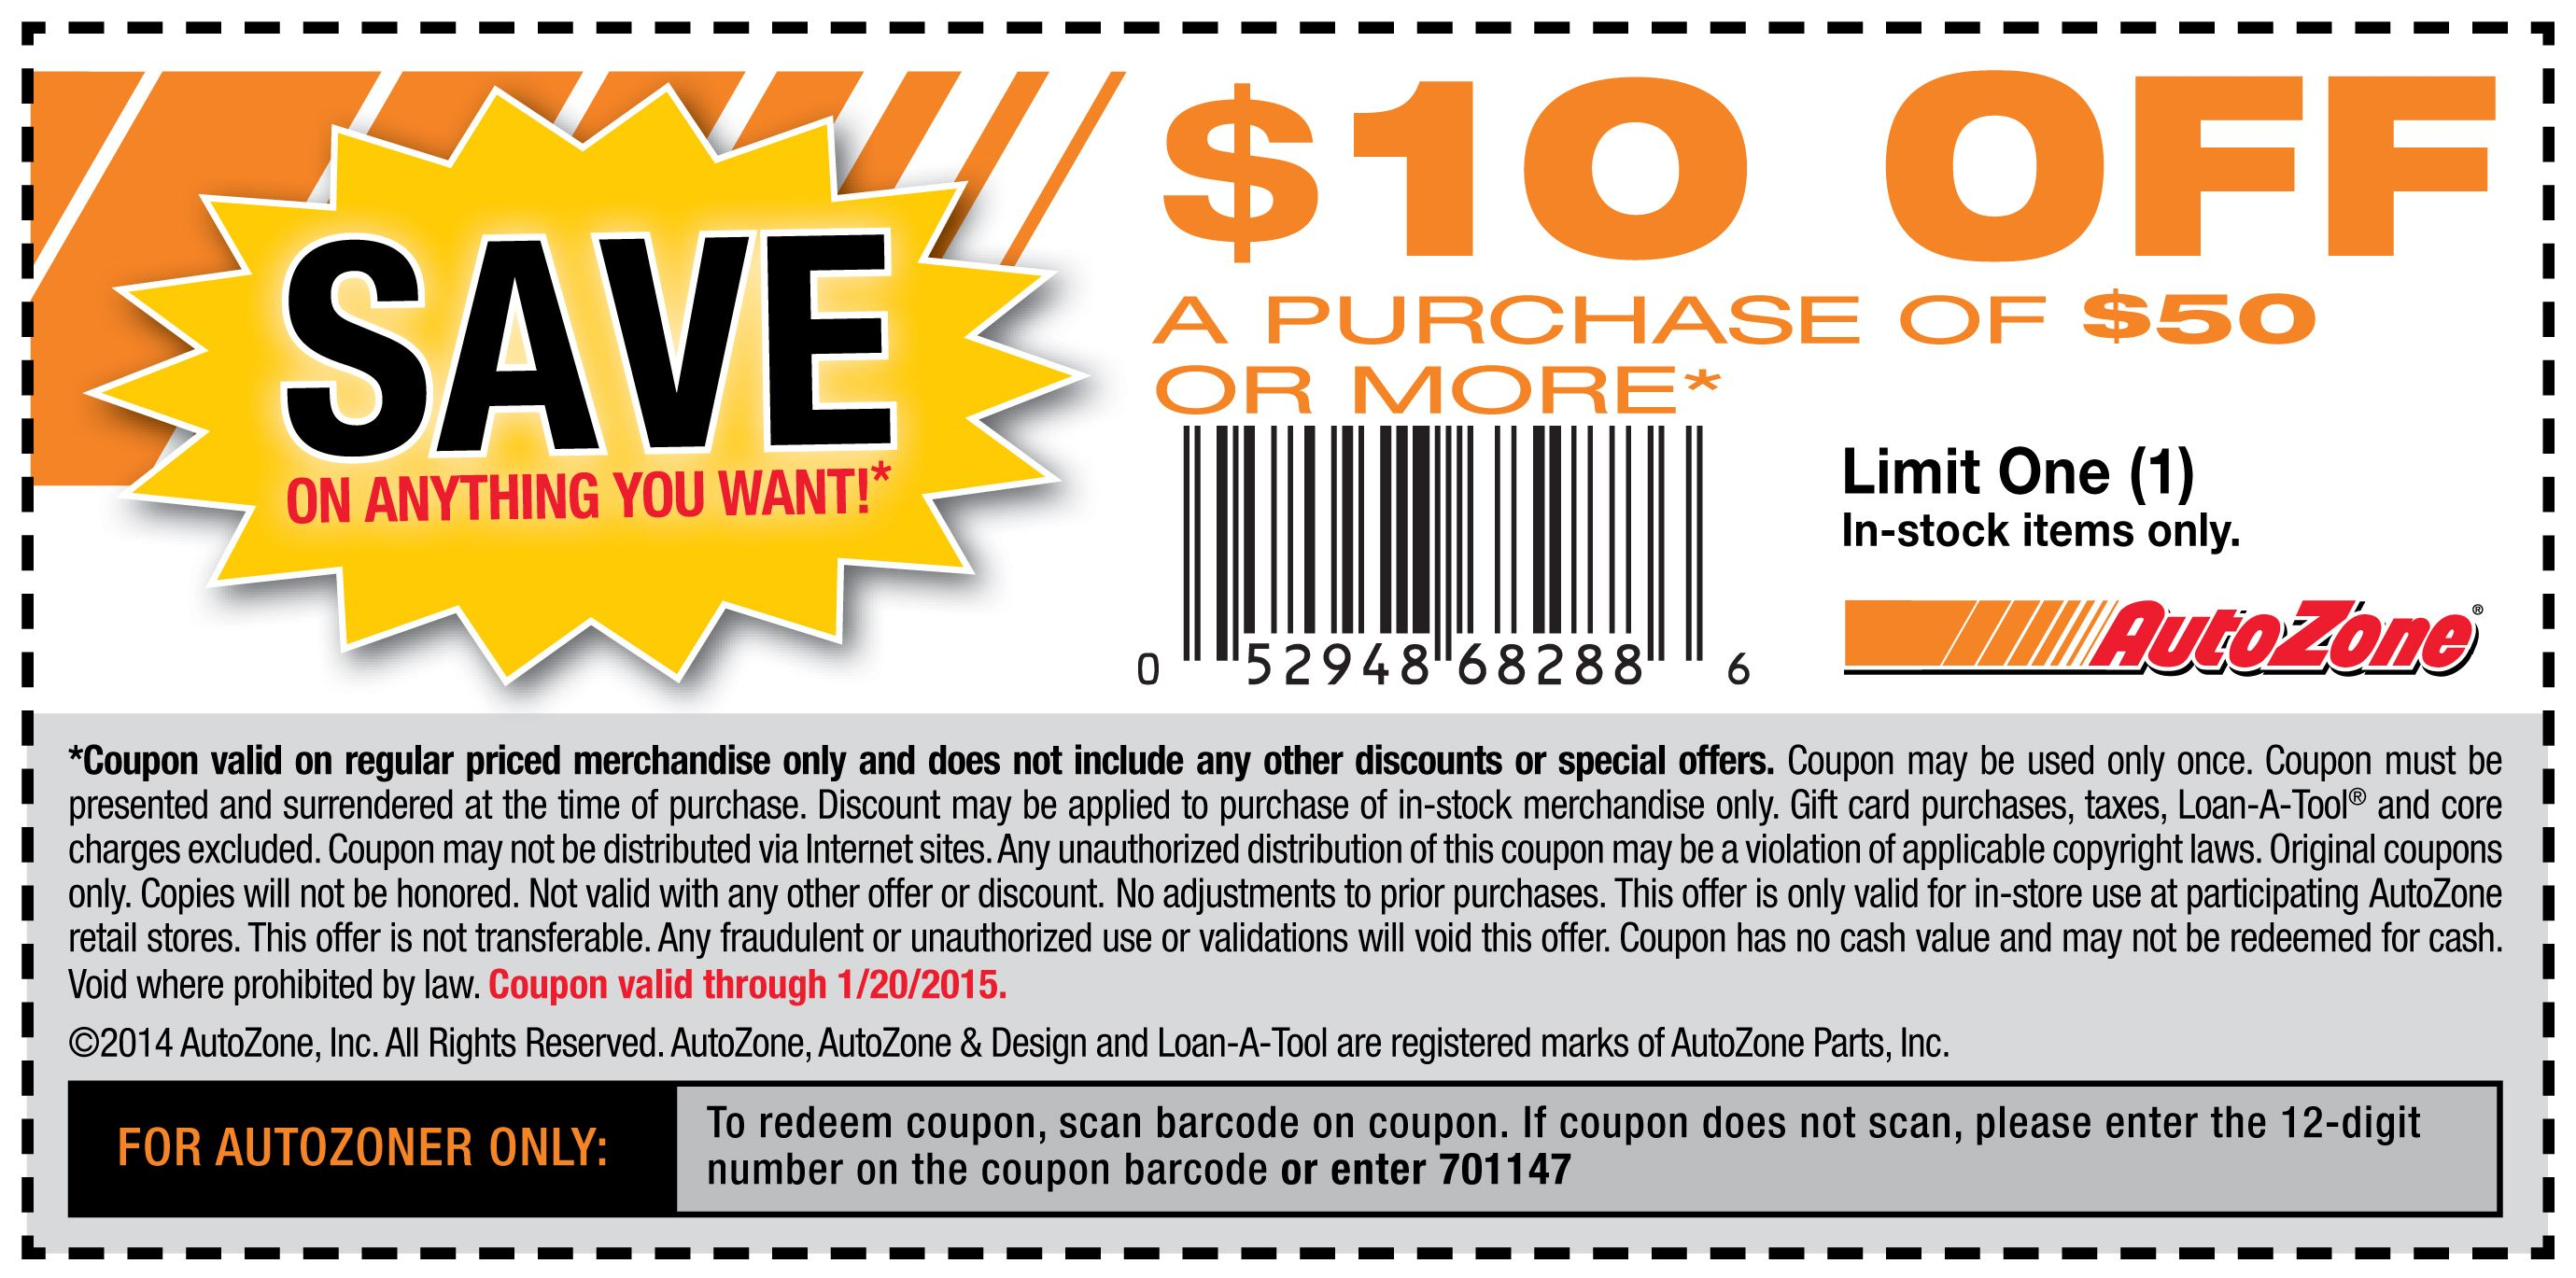 Autozone Coupons Coupon Apps Printable Coupons Free Coupons By Mail